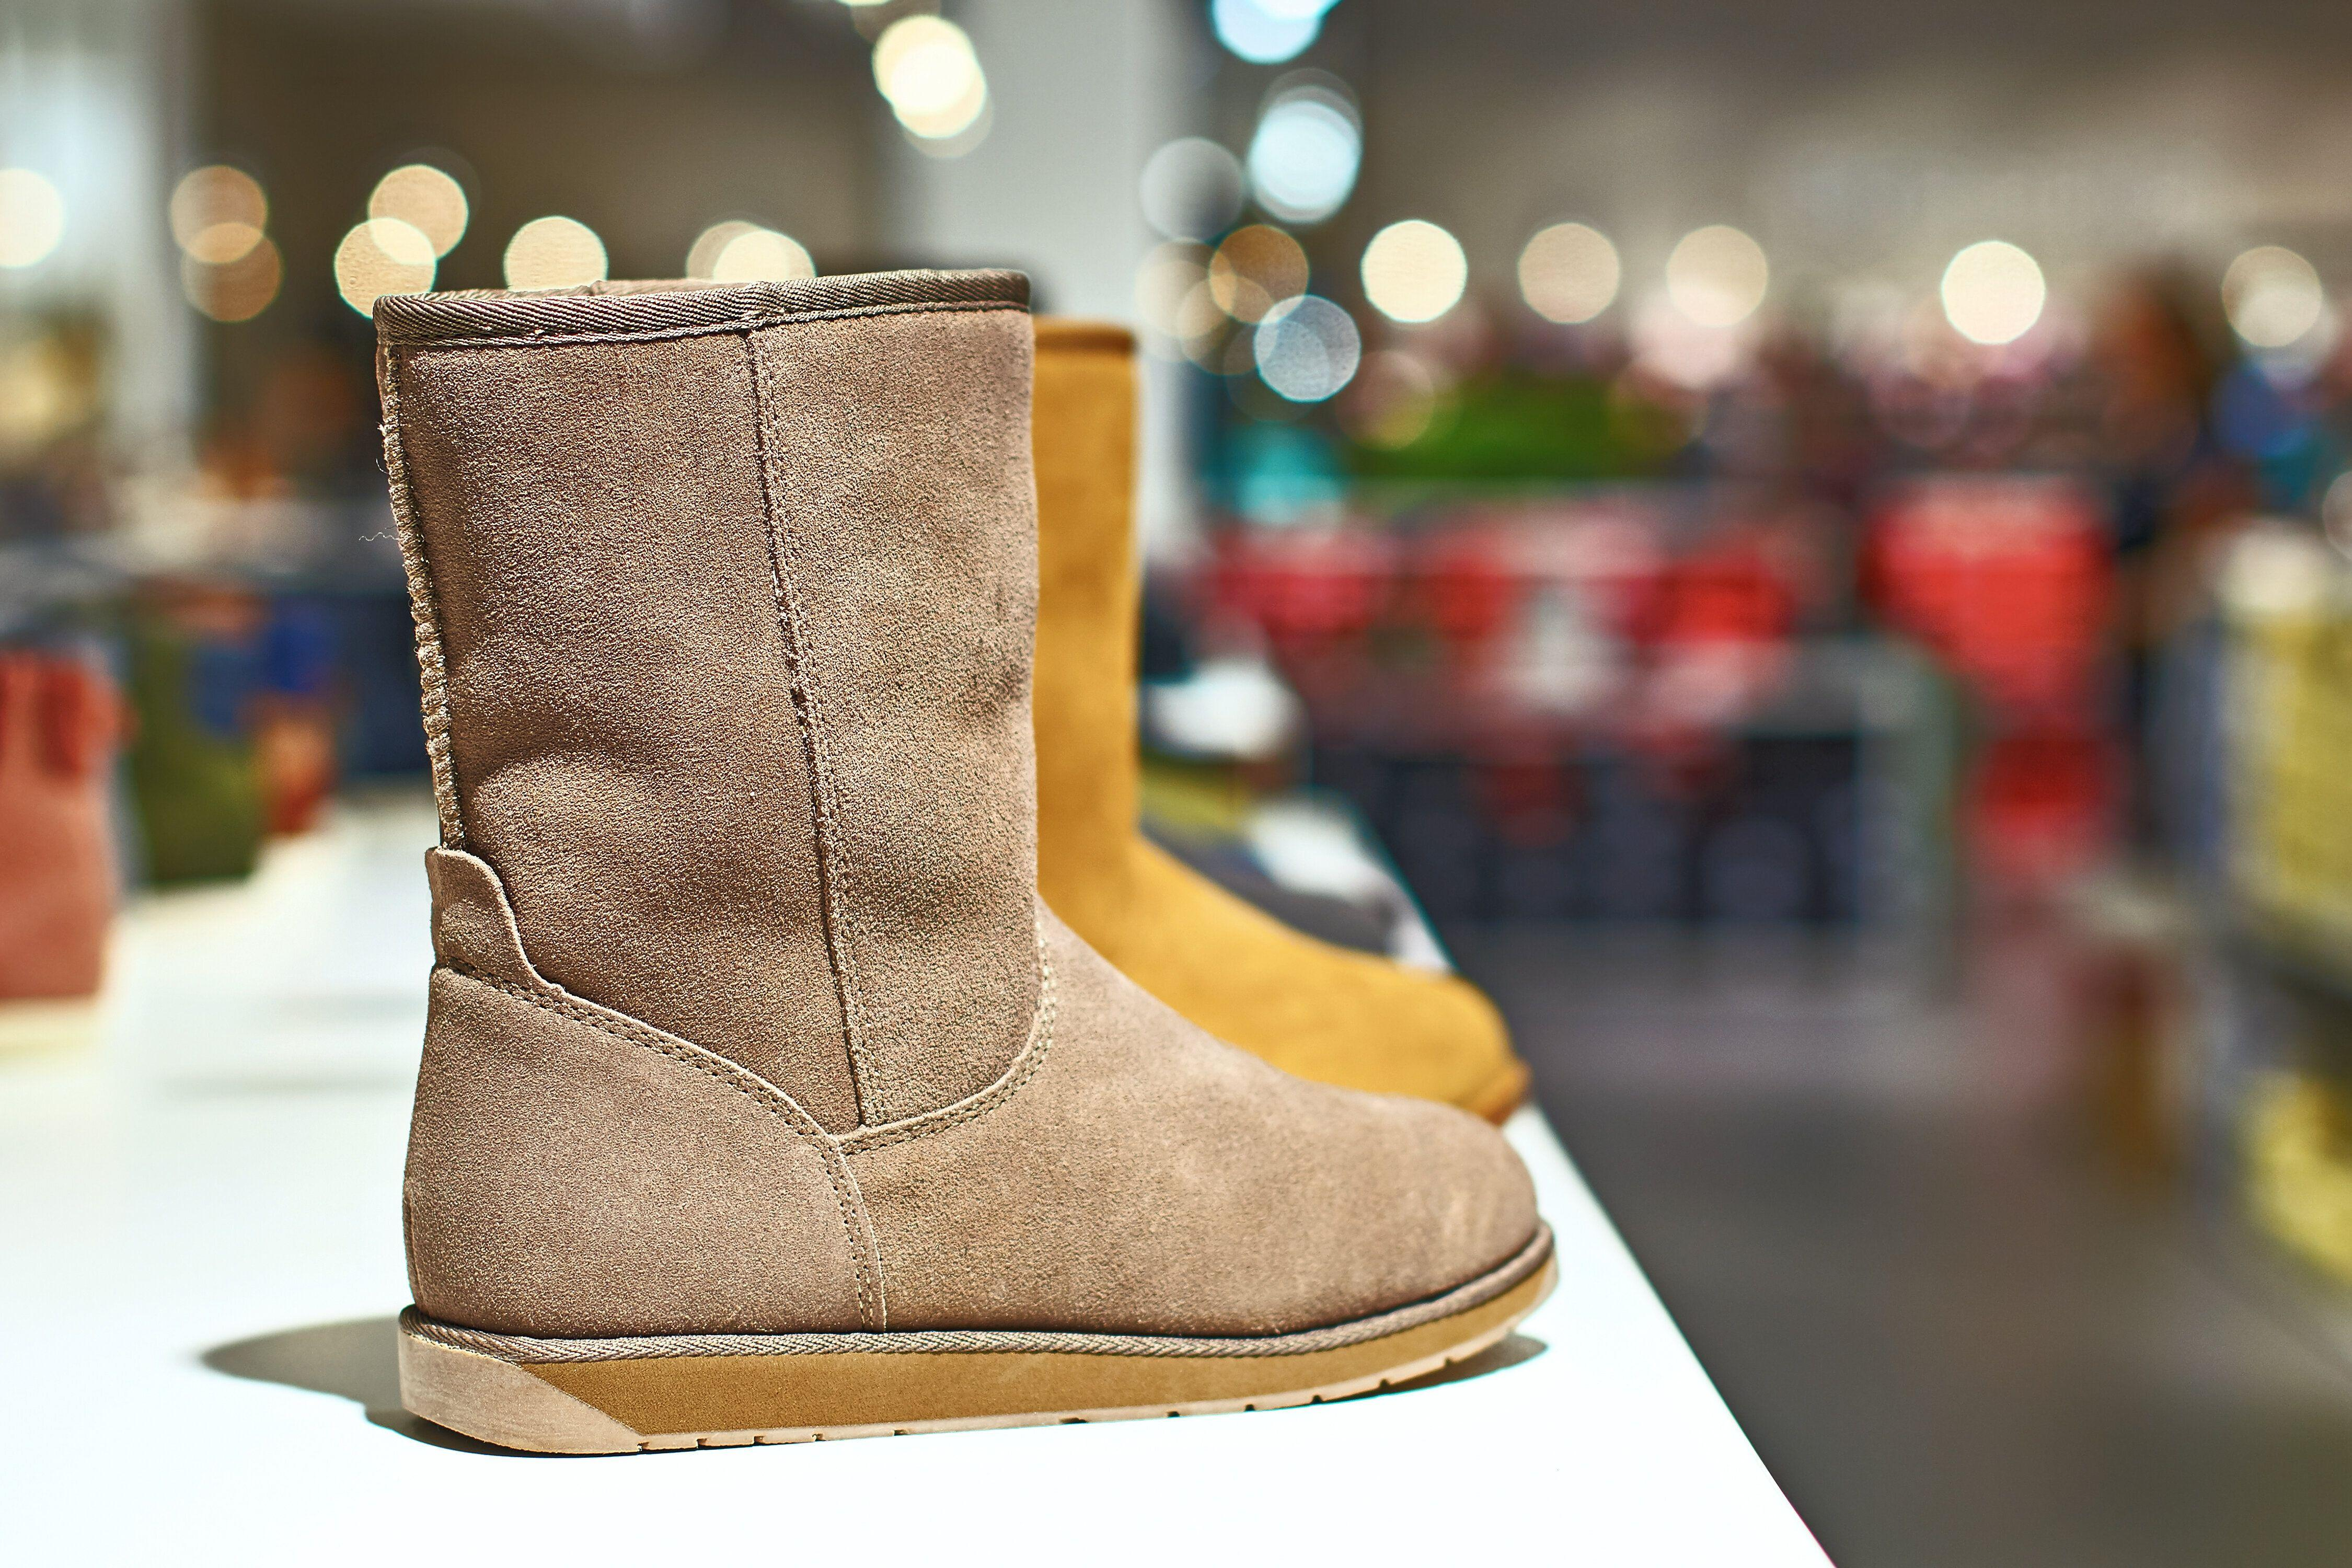 b3211251565 Australian ugg boots maker loses US trademark case to Deckers